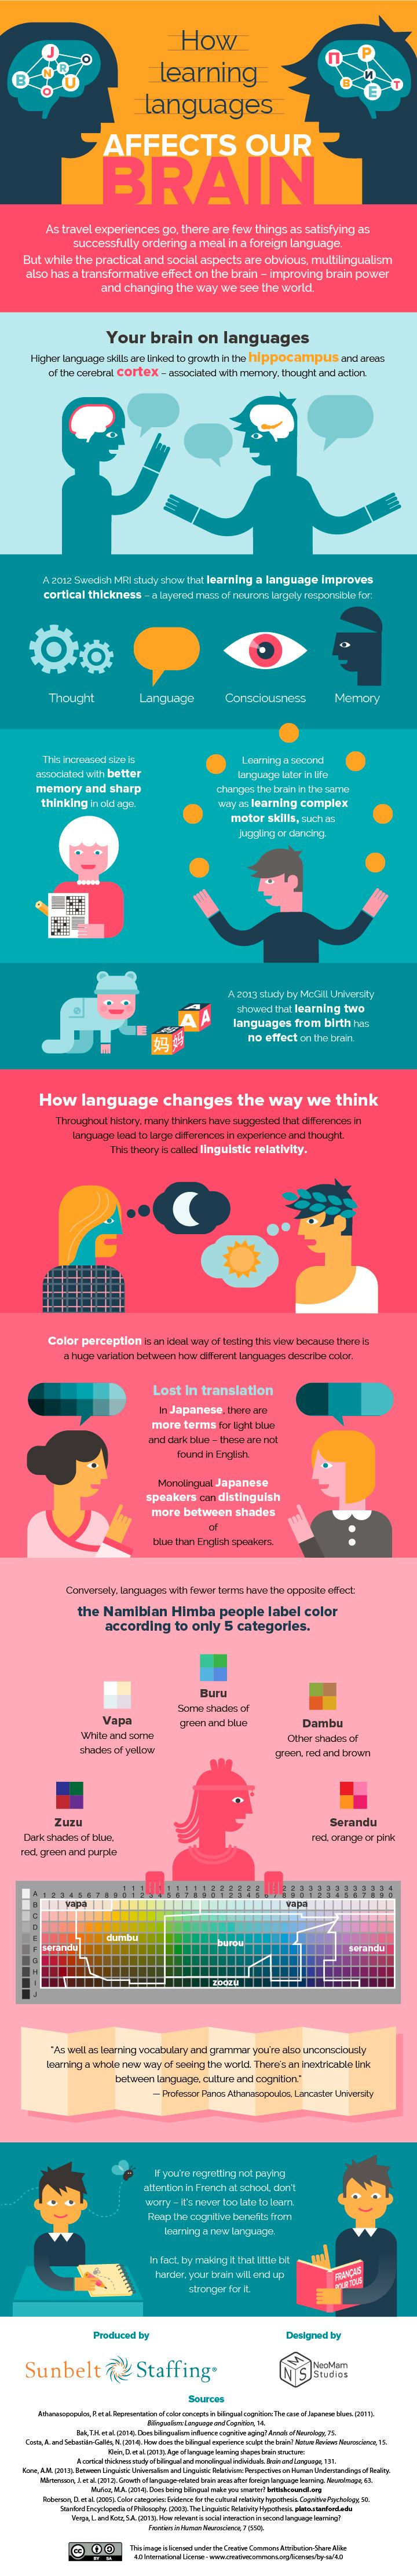 It's no secret that learning a new language is a good thing. It's also pretty well-known that learning a language as an adult is quite challenging. While difficult, learning a new language is incredibly rewarding, and it affects your brain in some pretty major ways. Have you ever wondered exactly how it change your brain?…